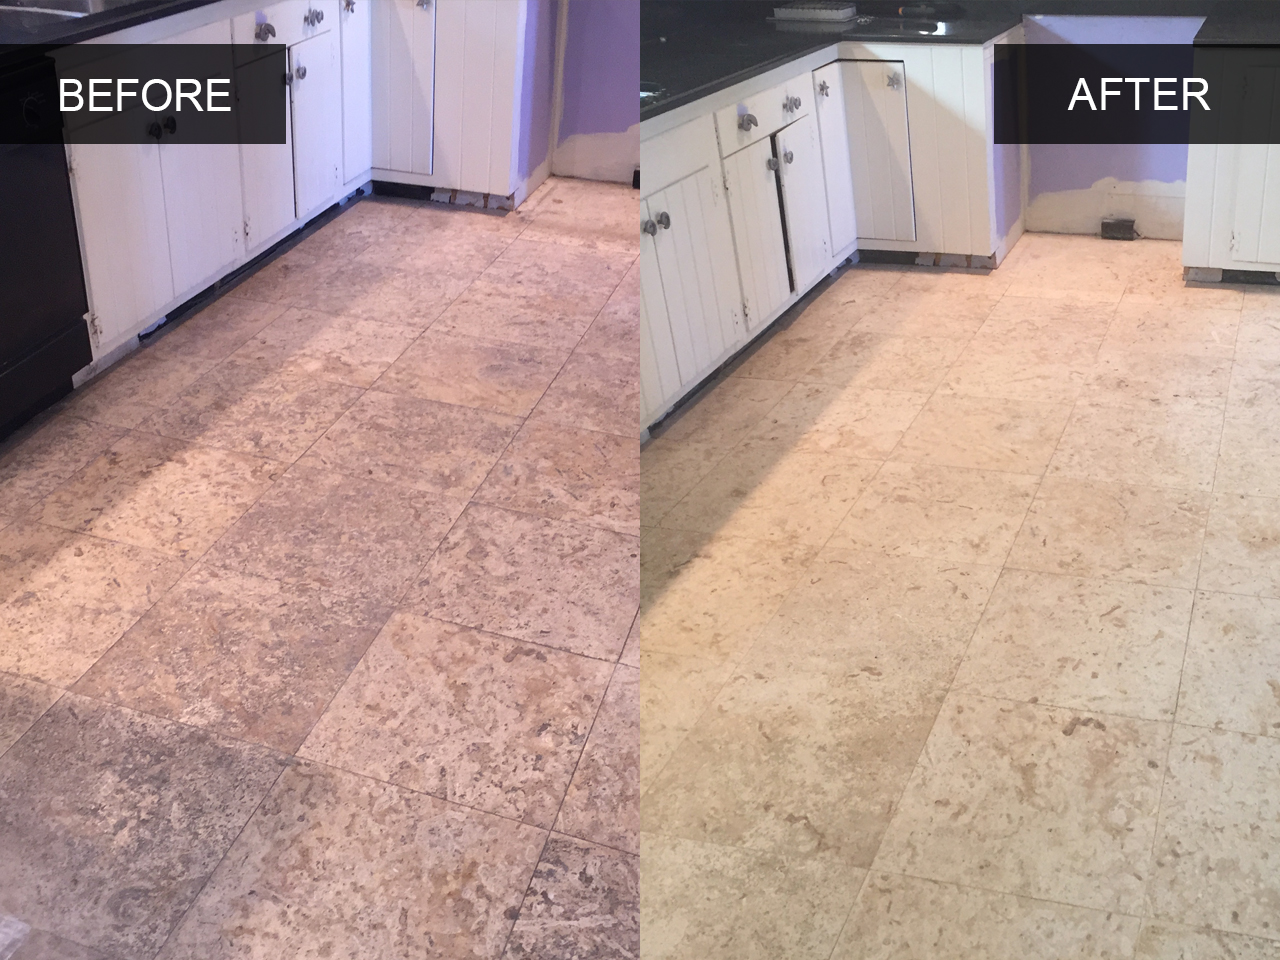 Travertine Floor Cleaning | Before and After